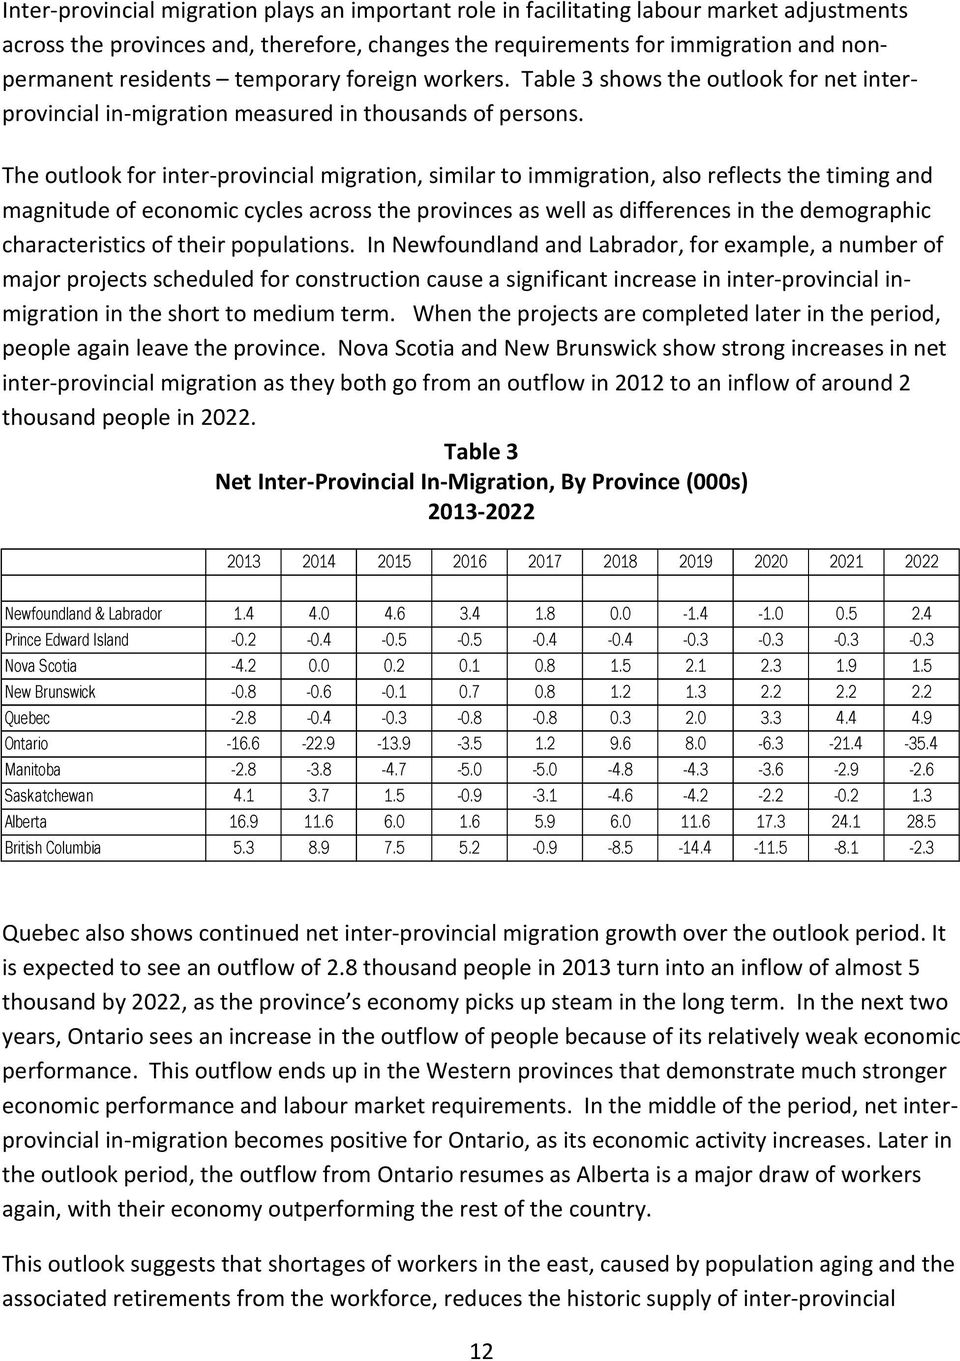 The outlook for inter-provincial migration, similar to immigration, also reflects the timing and magnitude of economic cycles across the provinces as well as differences in the demographic